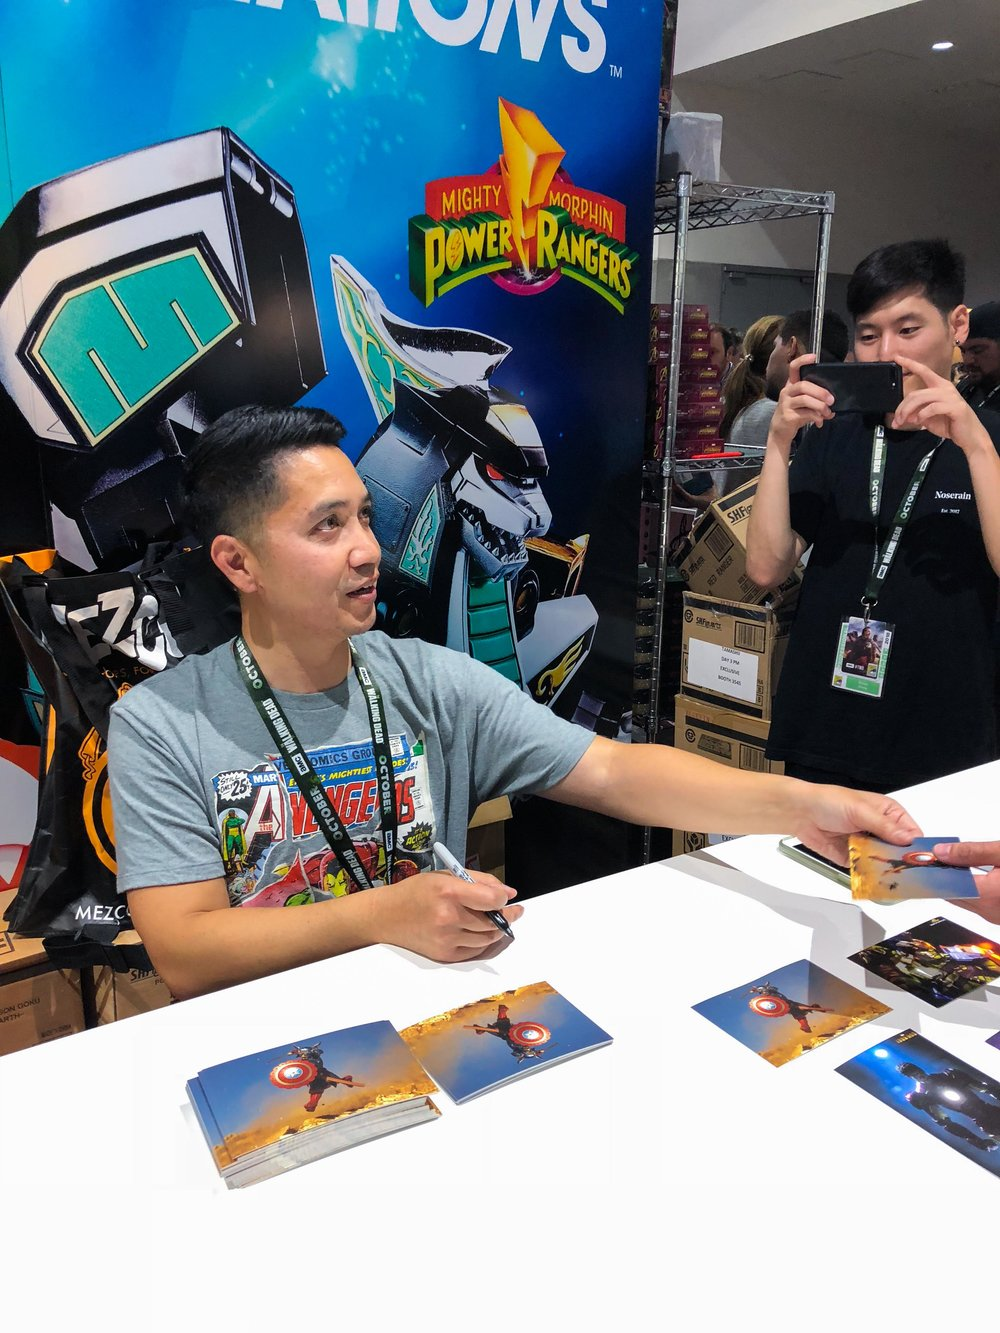 Signing and giving out photos at the Bluefin/Tamashii Nations booth at SDCC. Courtesy  @swittpics